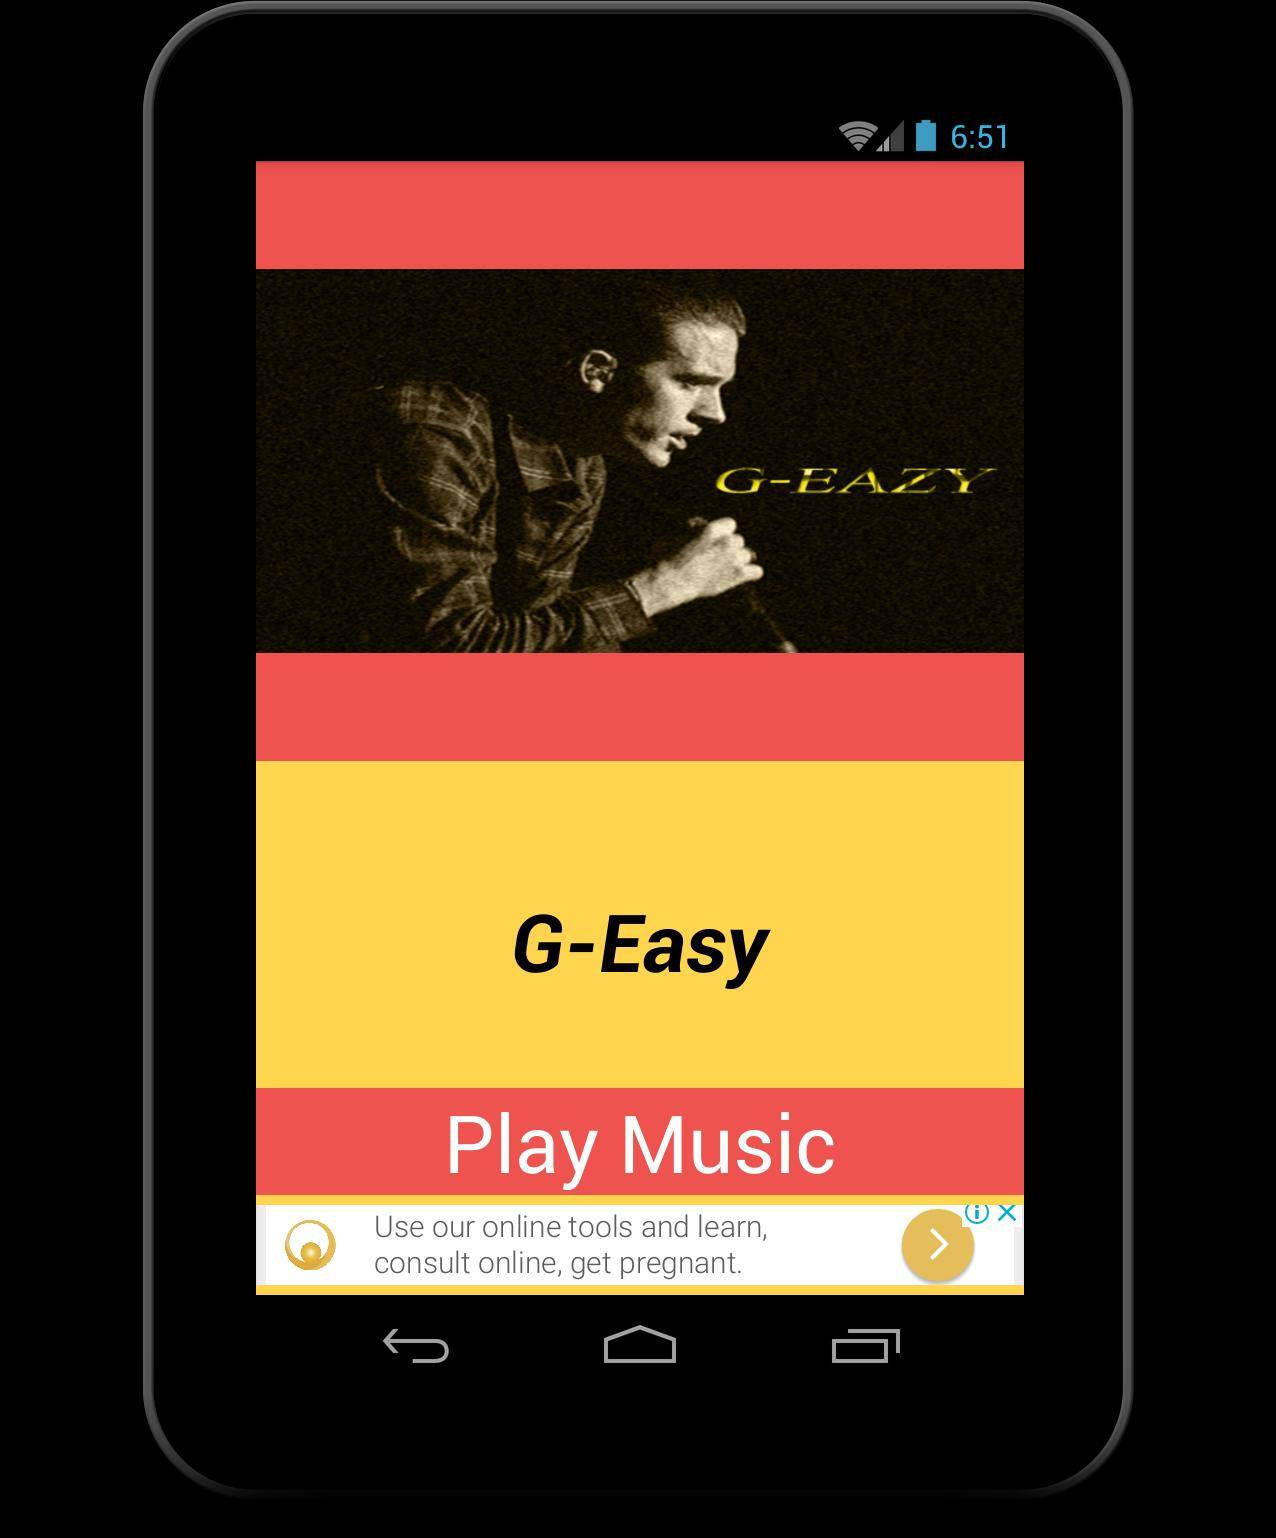 G-Eazy (Songs Mp3) for Android - APK Download